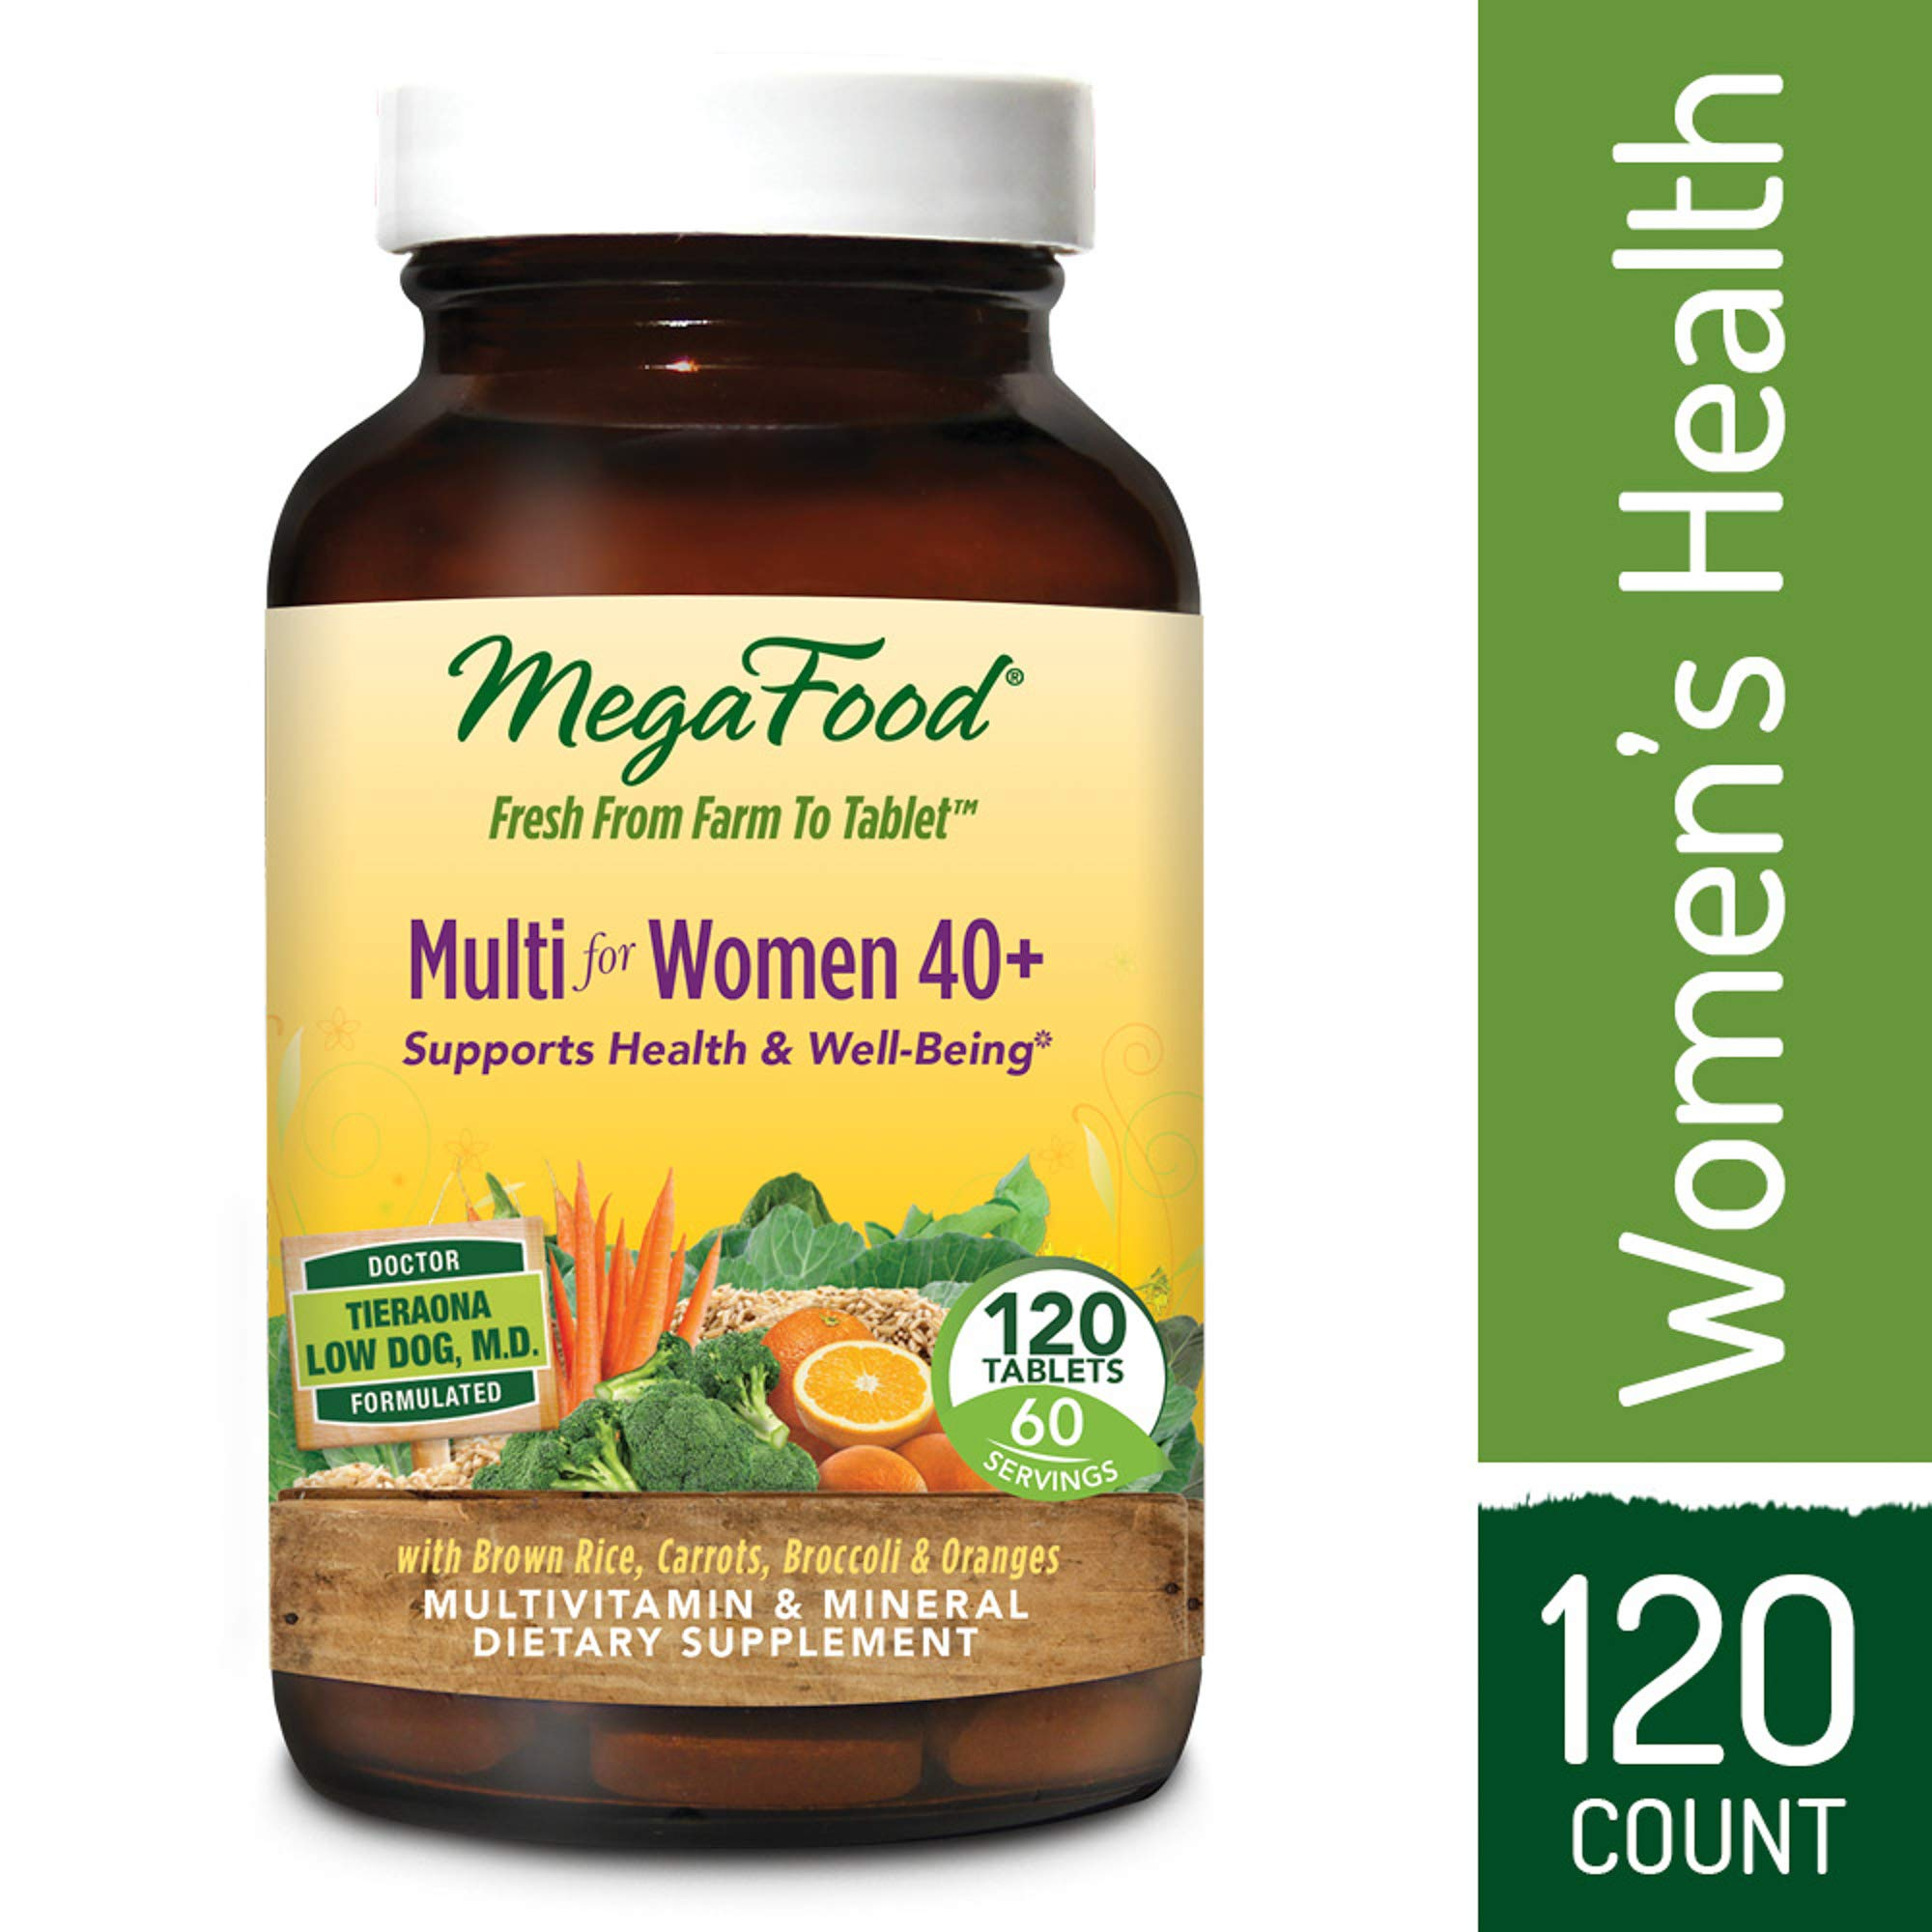 MegaFood - Multi for Women 40+, Multivitamin Support for Energy Production, Hormone Balance, Bone, and Brain Health with Methylated Folate and Iron, Vegetarian, Gluten-Free, Non-GMO, 120 Tablets